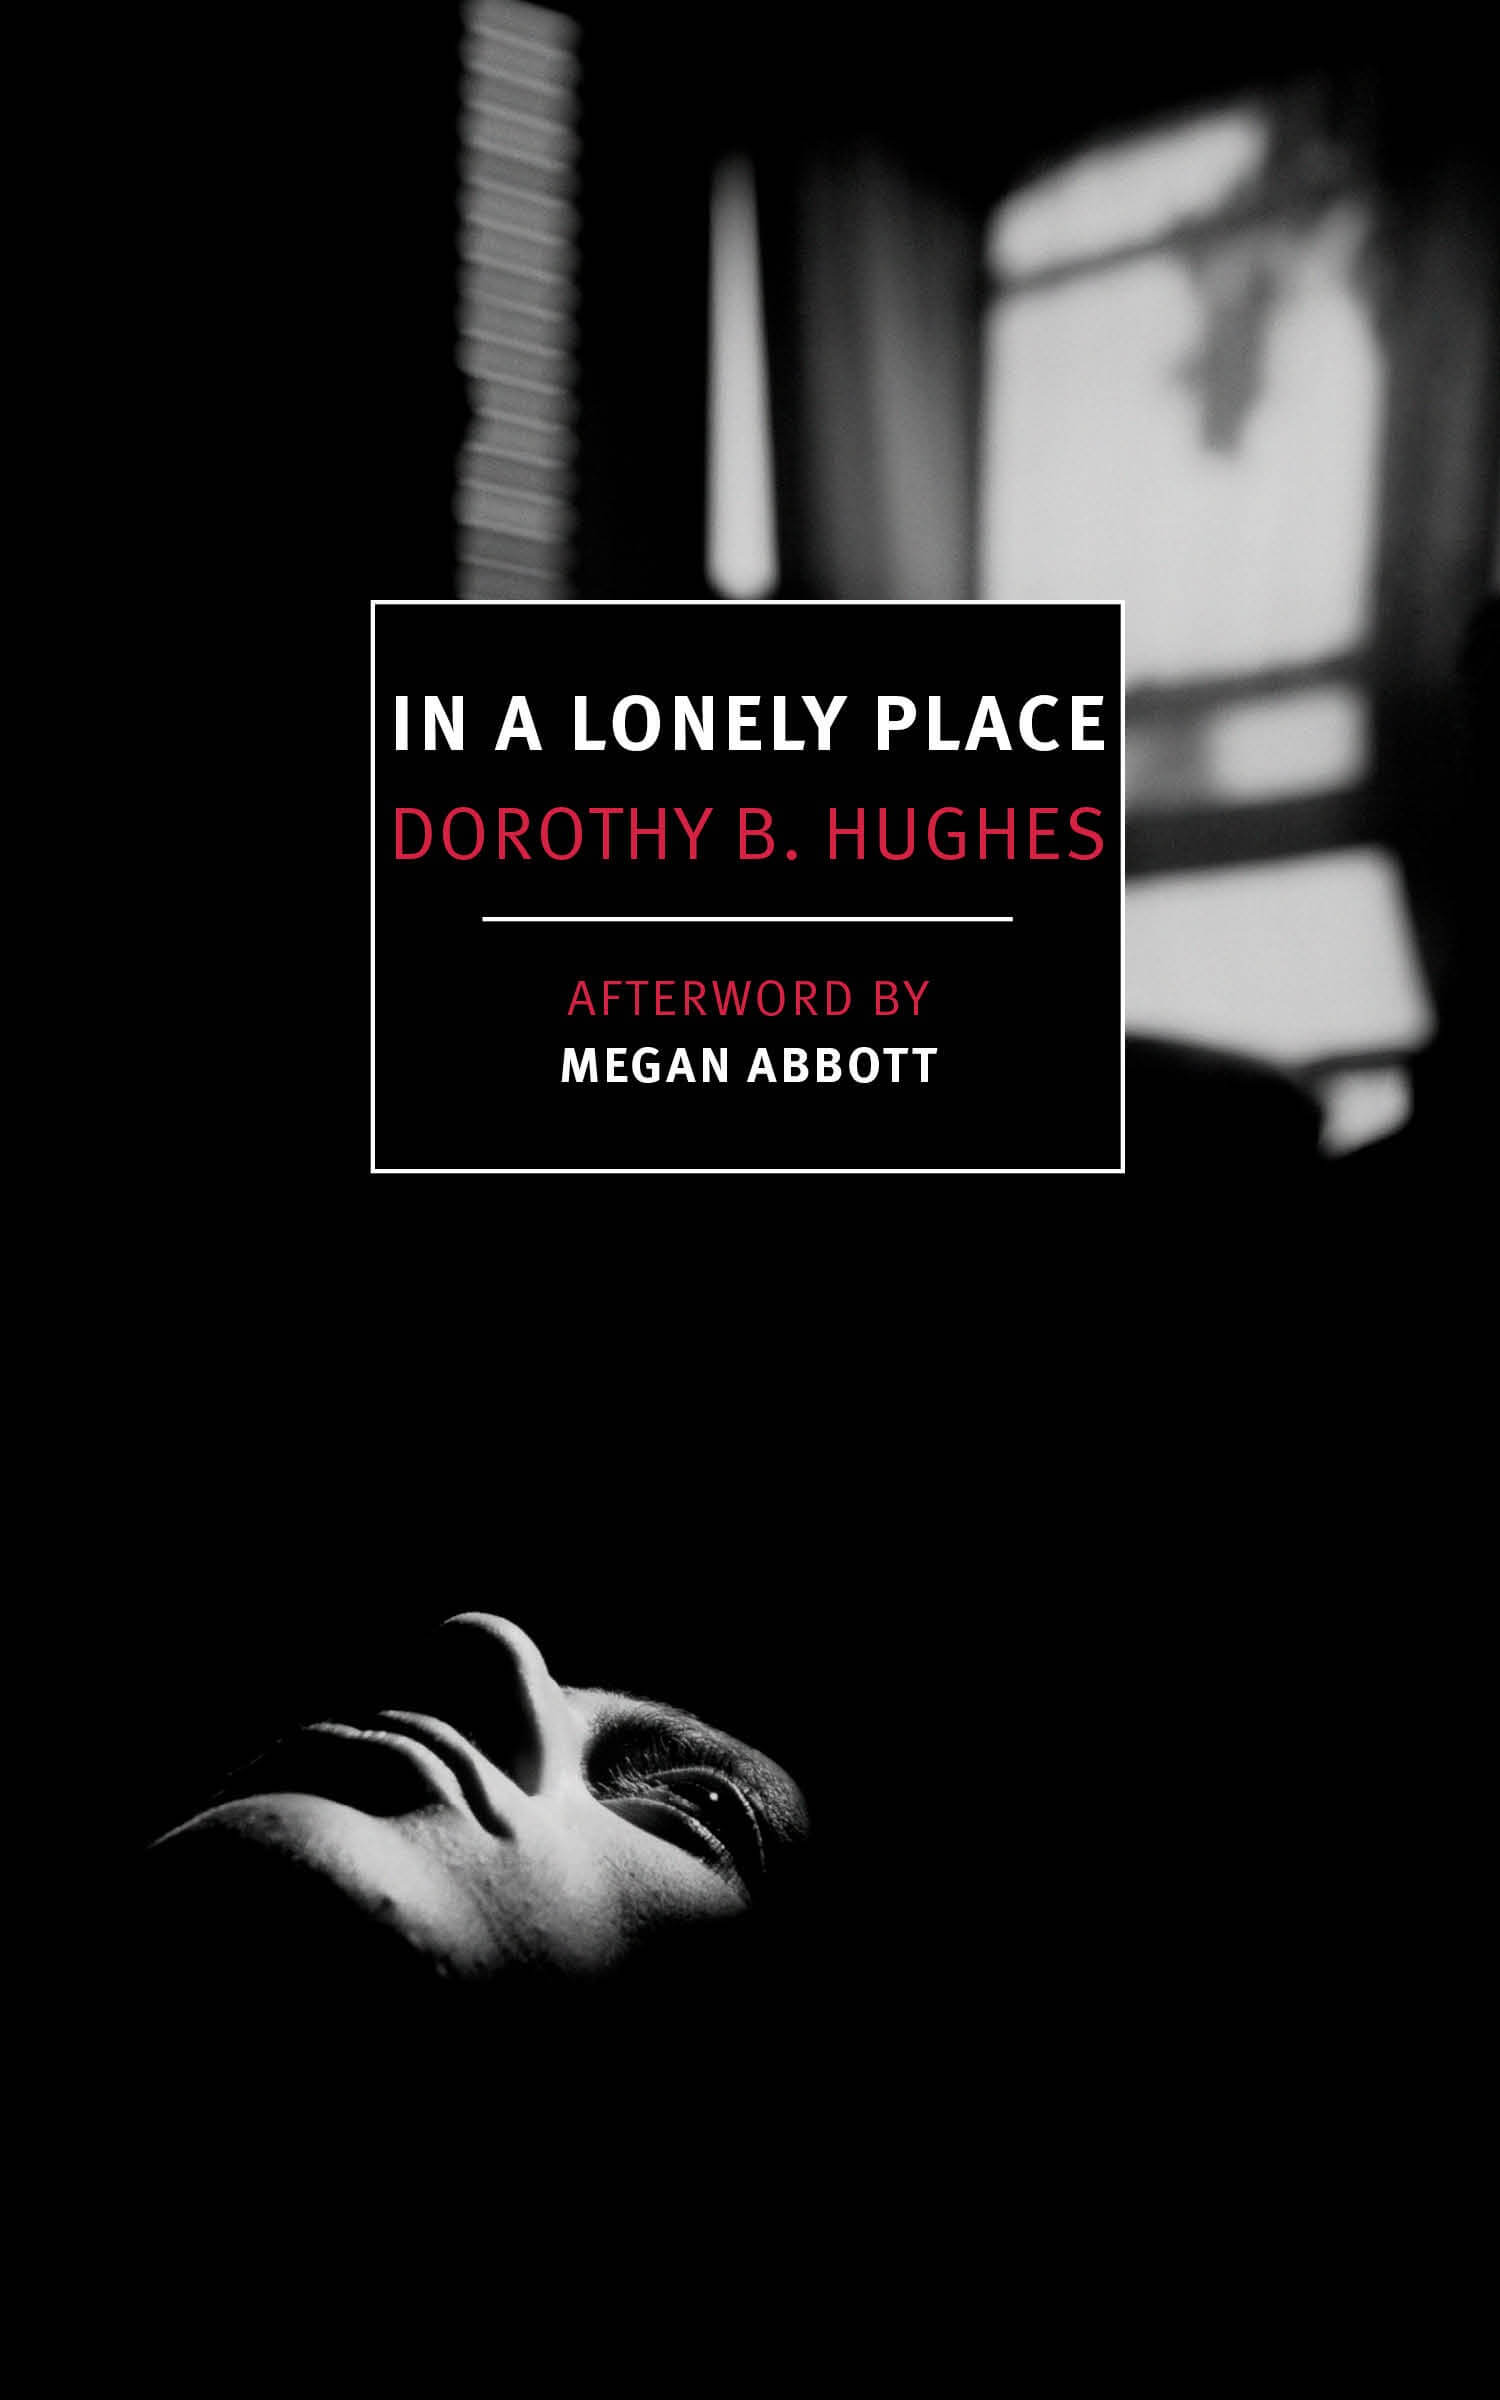 Book cover of In a Lonely Place by Dorothy B. Hughes